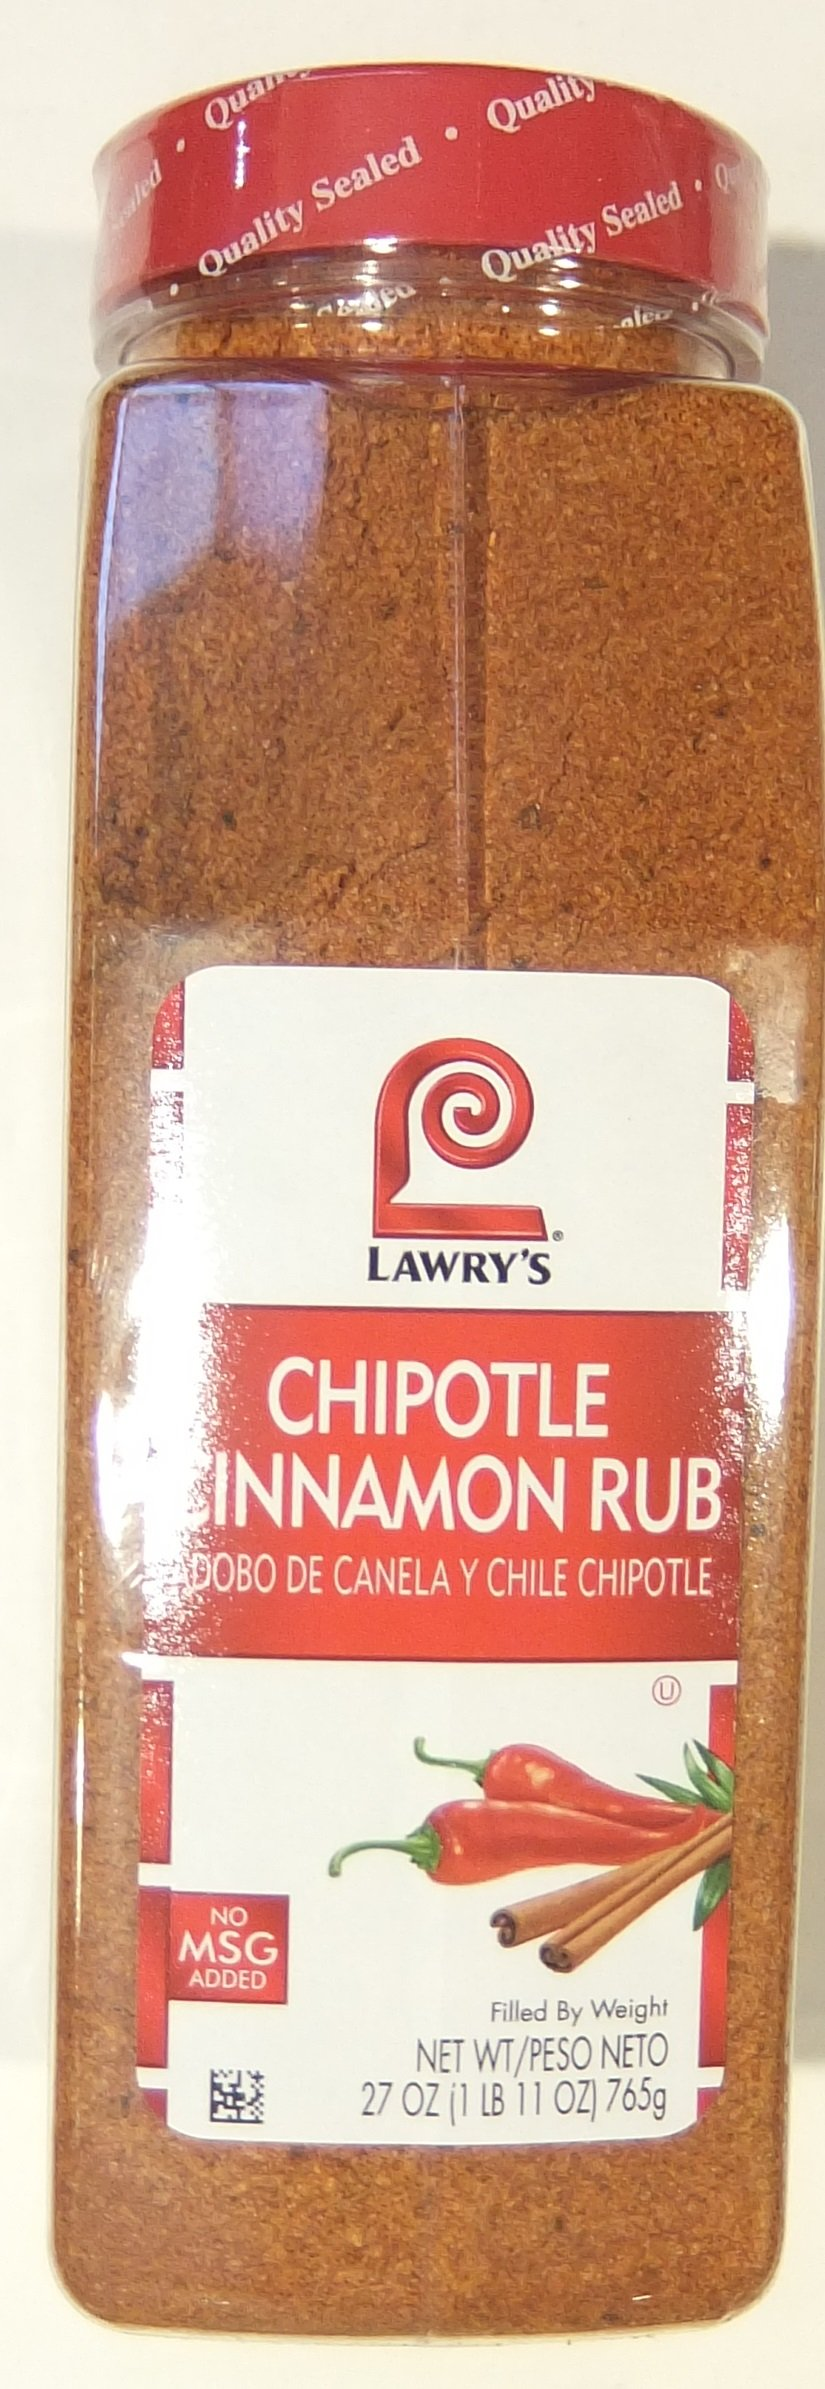 Lawry's Chipotle Cinnamon Rub, 27 Ounce